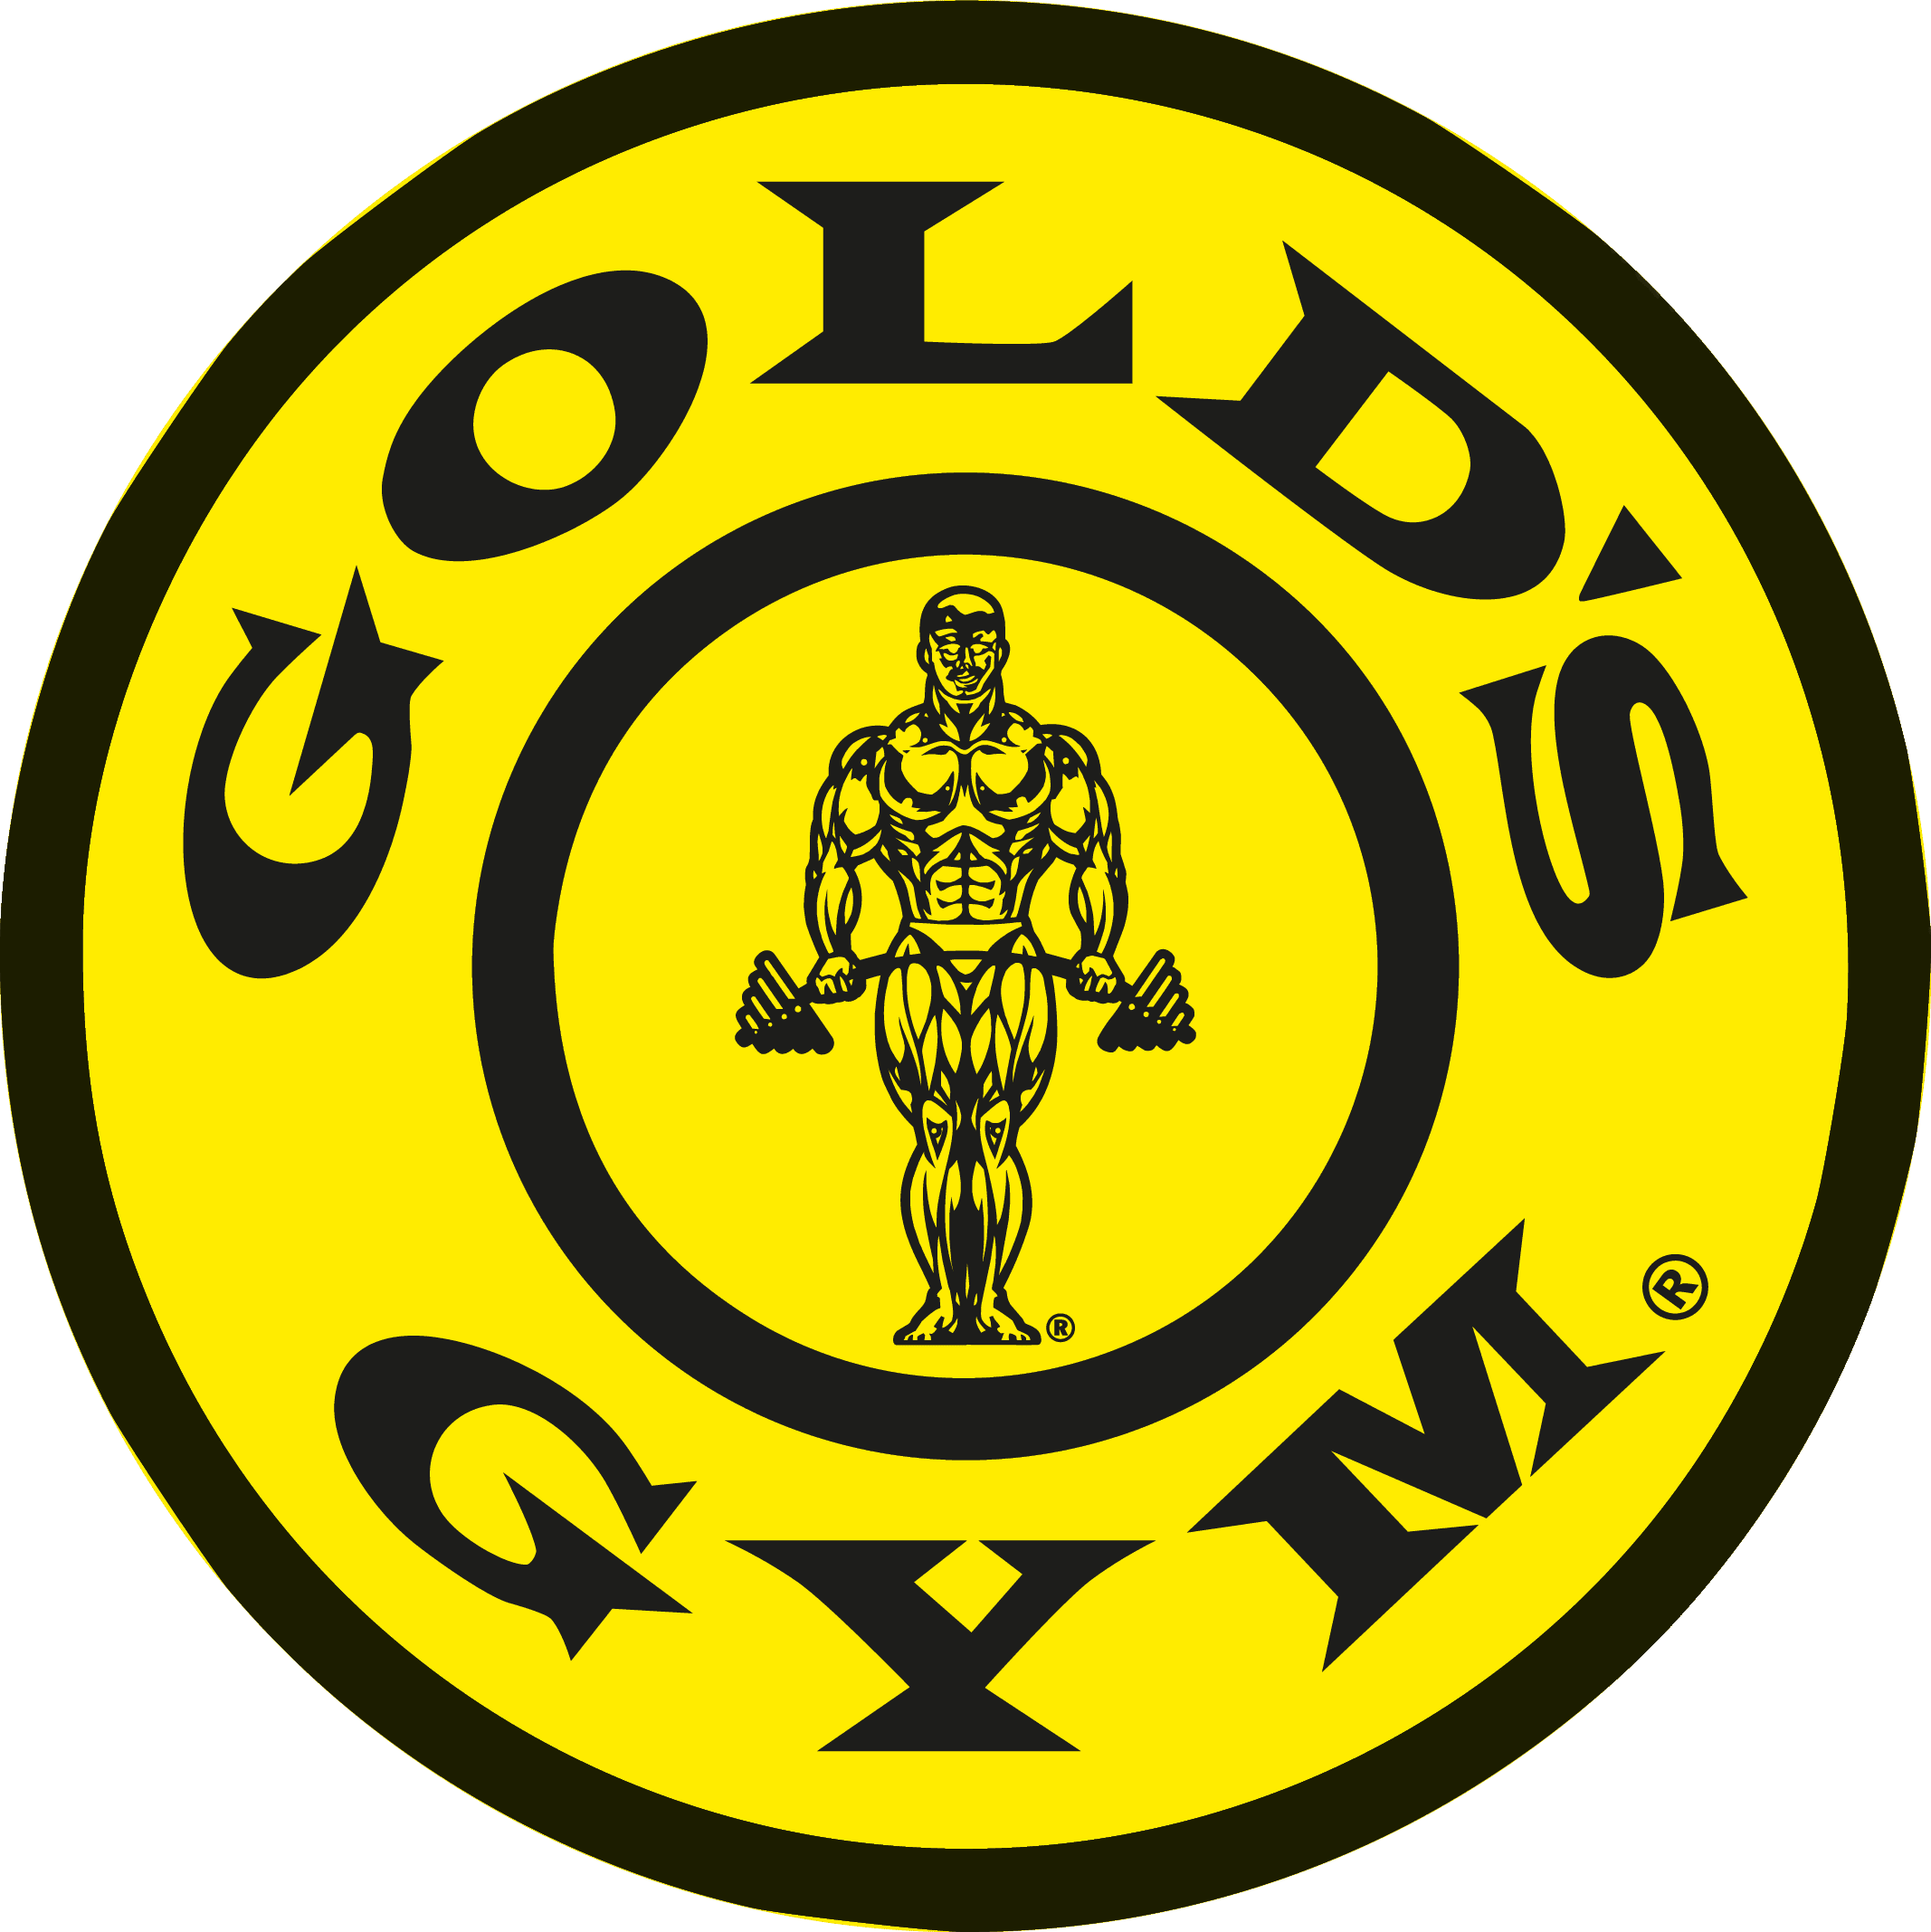 Golds Gym Logo png